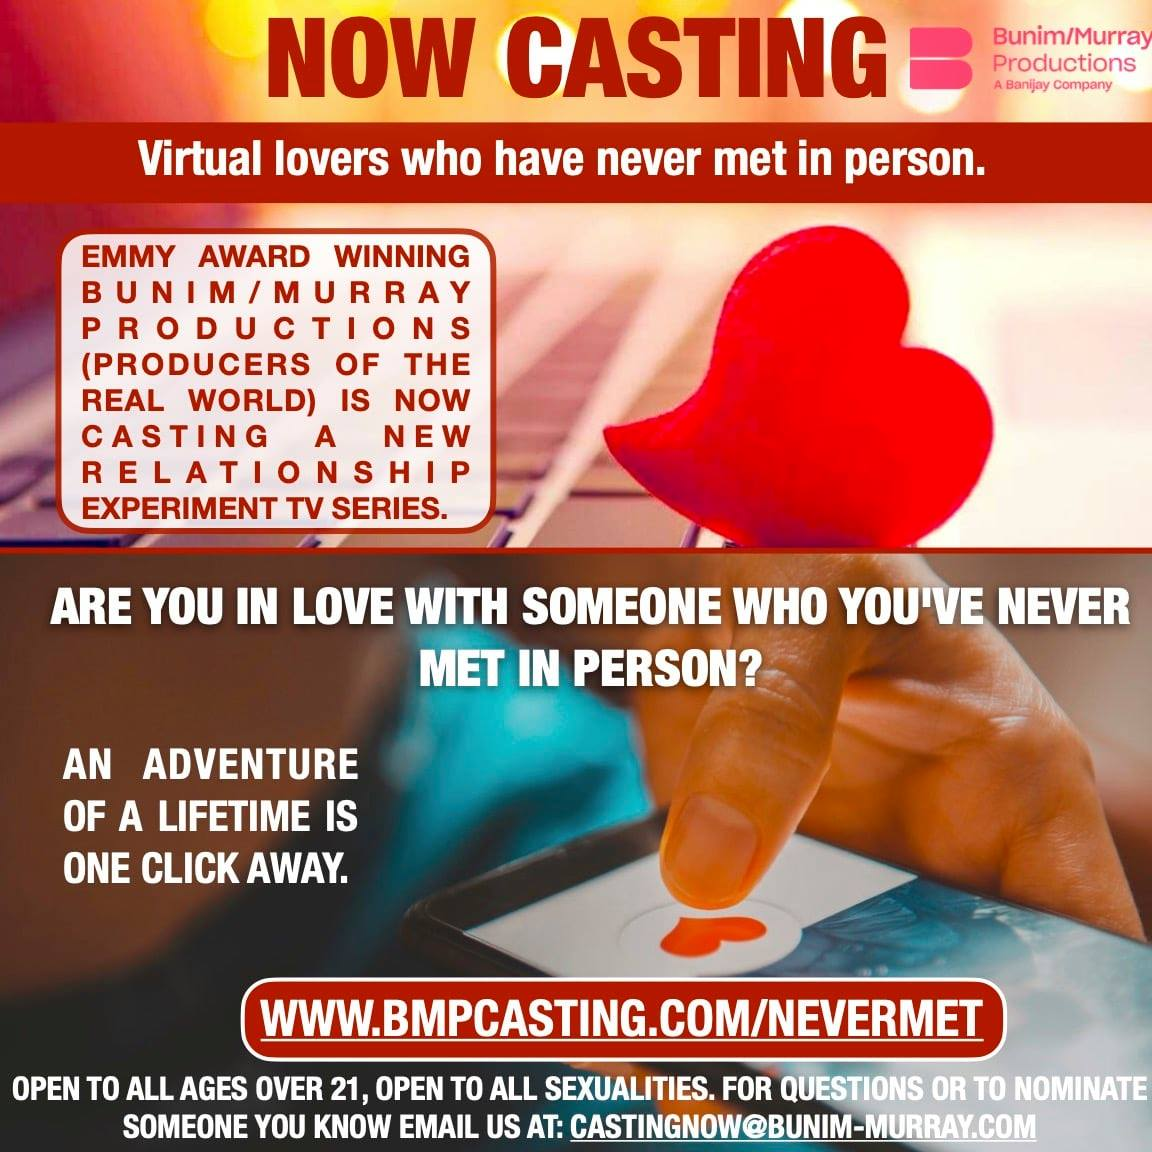 Now Casting VIRTUAL LOVERS Who Have NEVER Met In Person! Are you dating someone special online, but have still not met face to face? To apply, visit https://t.co/L7tOX9jULA. Tag someone you know who is in a virtual relationship! #nevermet #onlinelove #longdistance https://t.co/SUyaosylgR